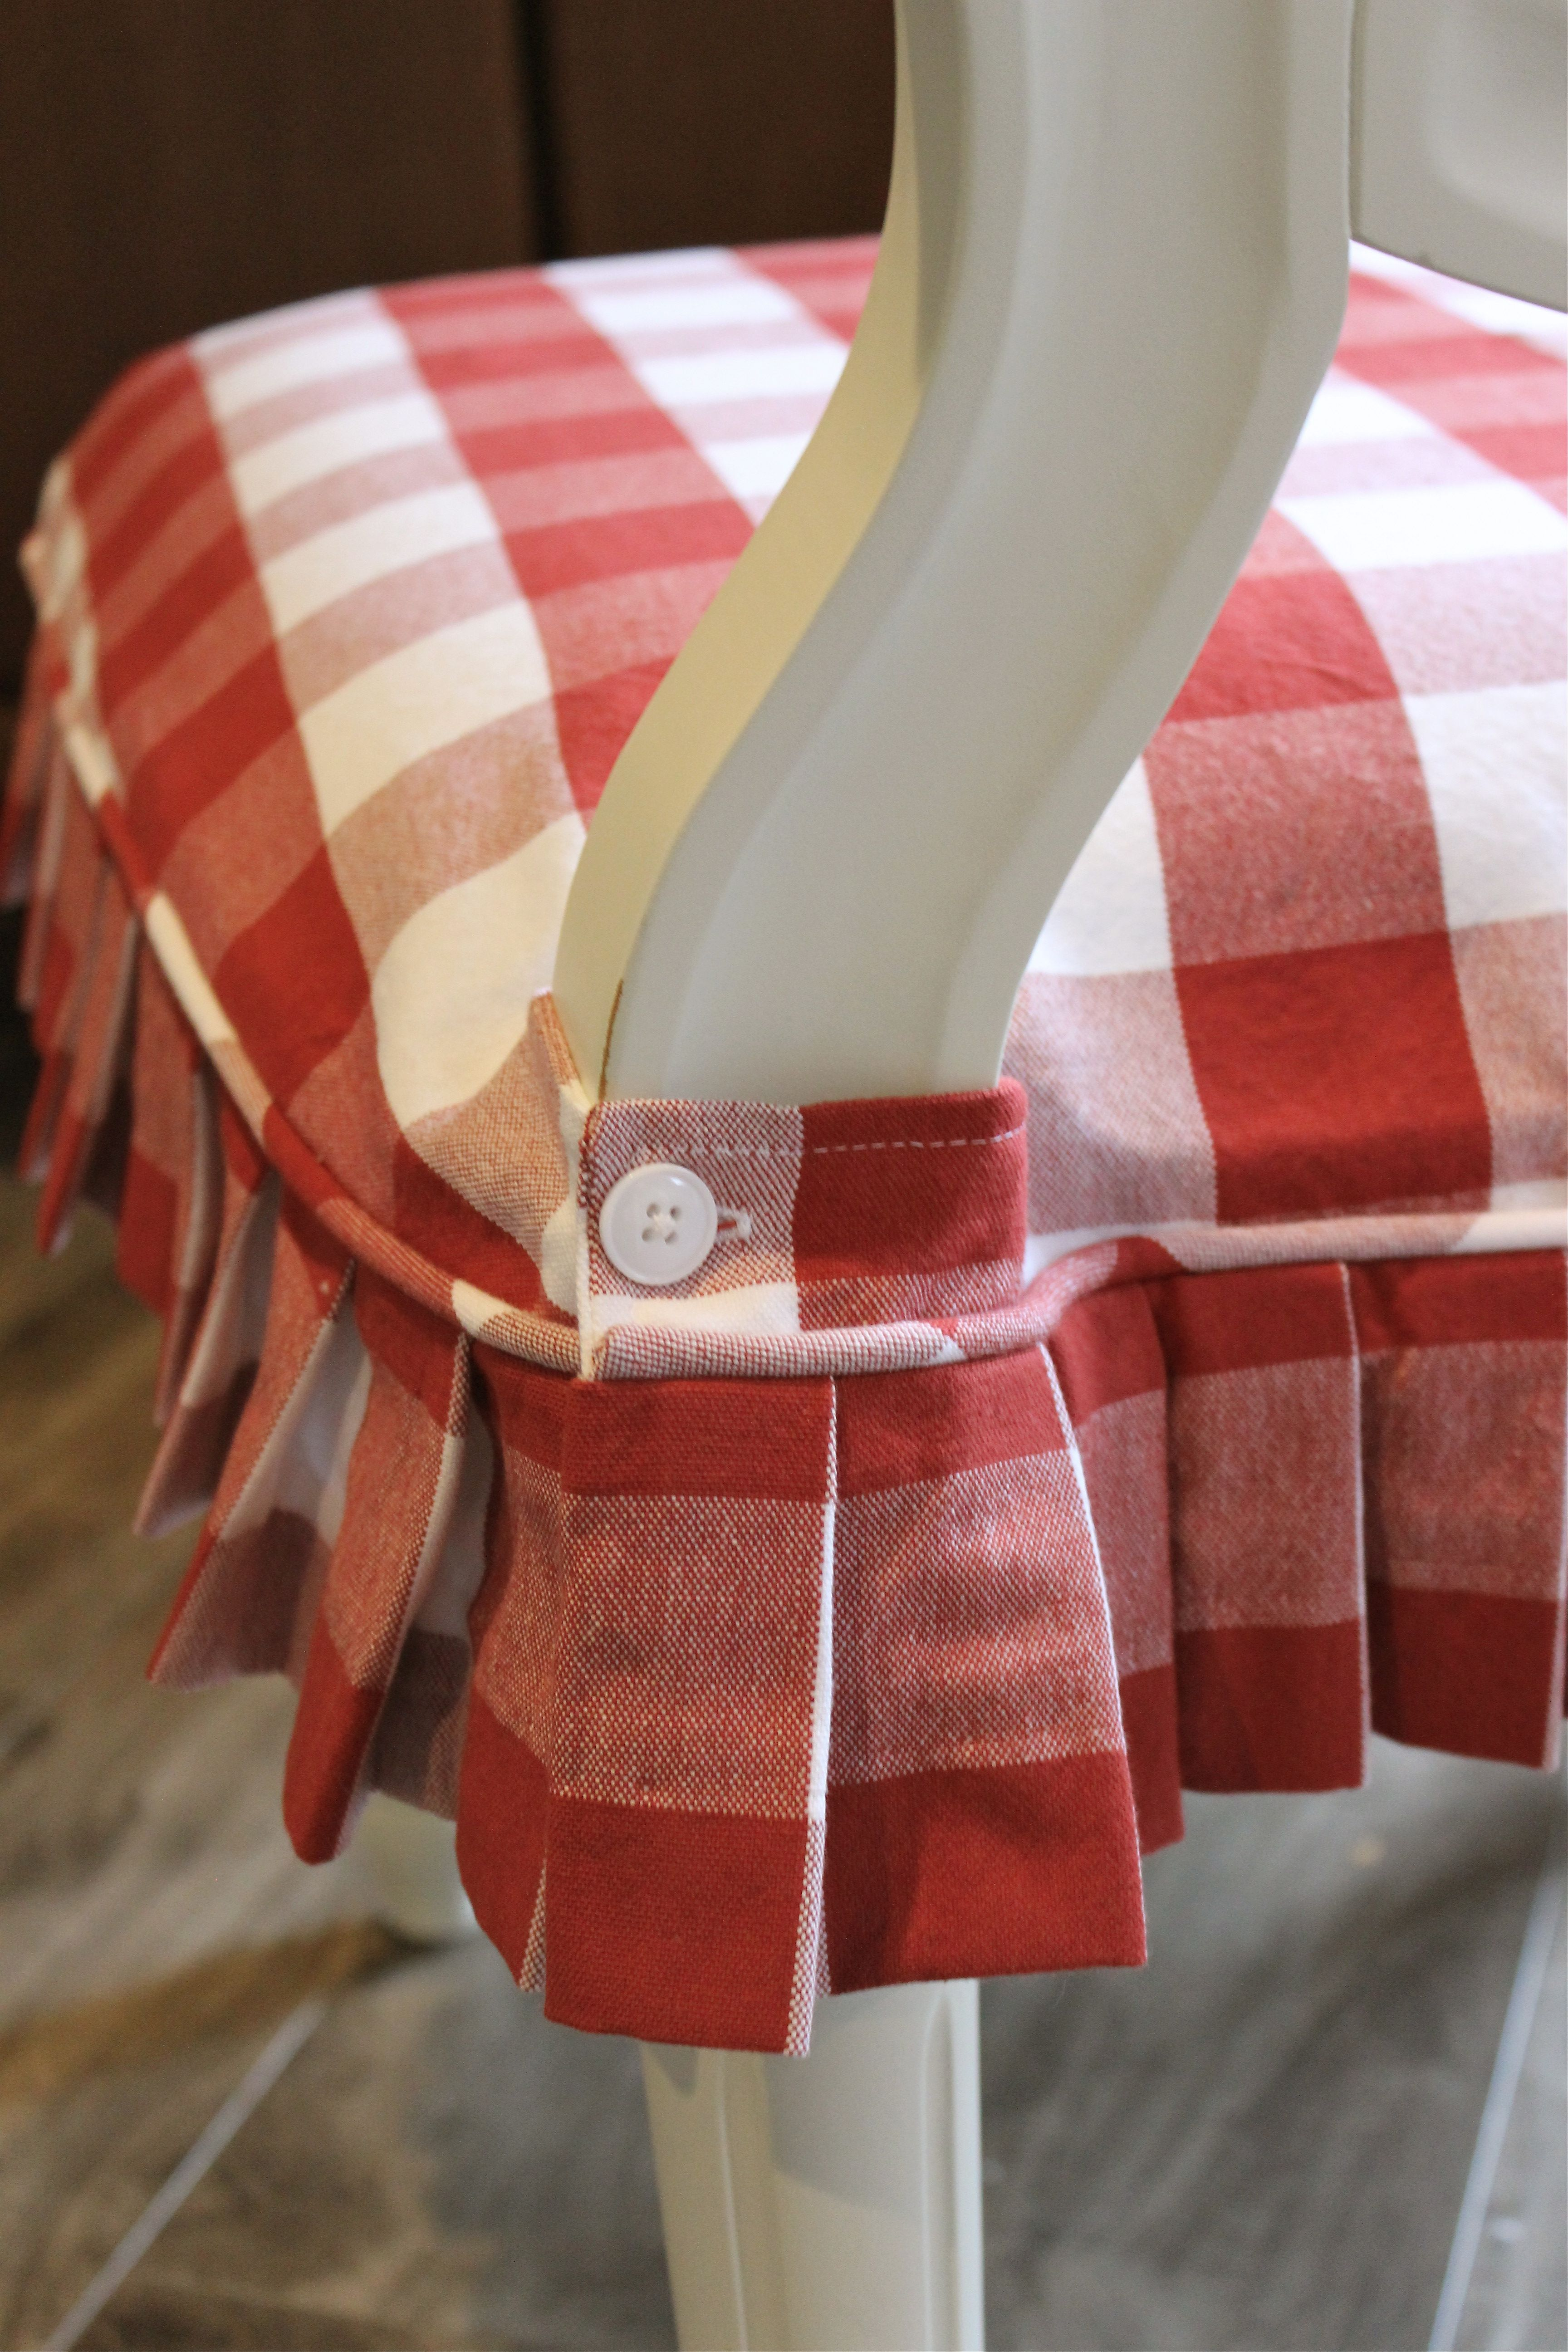 Red And White Buffalo Check Slipcovers Slipcovers By Shelley Slipcovers For Chairs Slipcovers Upholstery